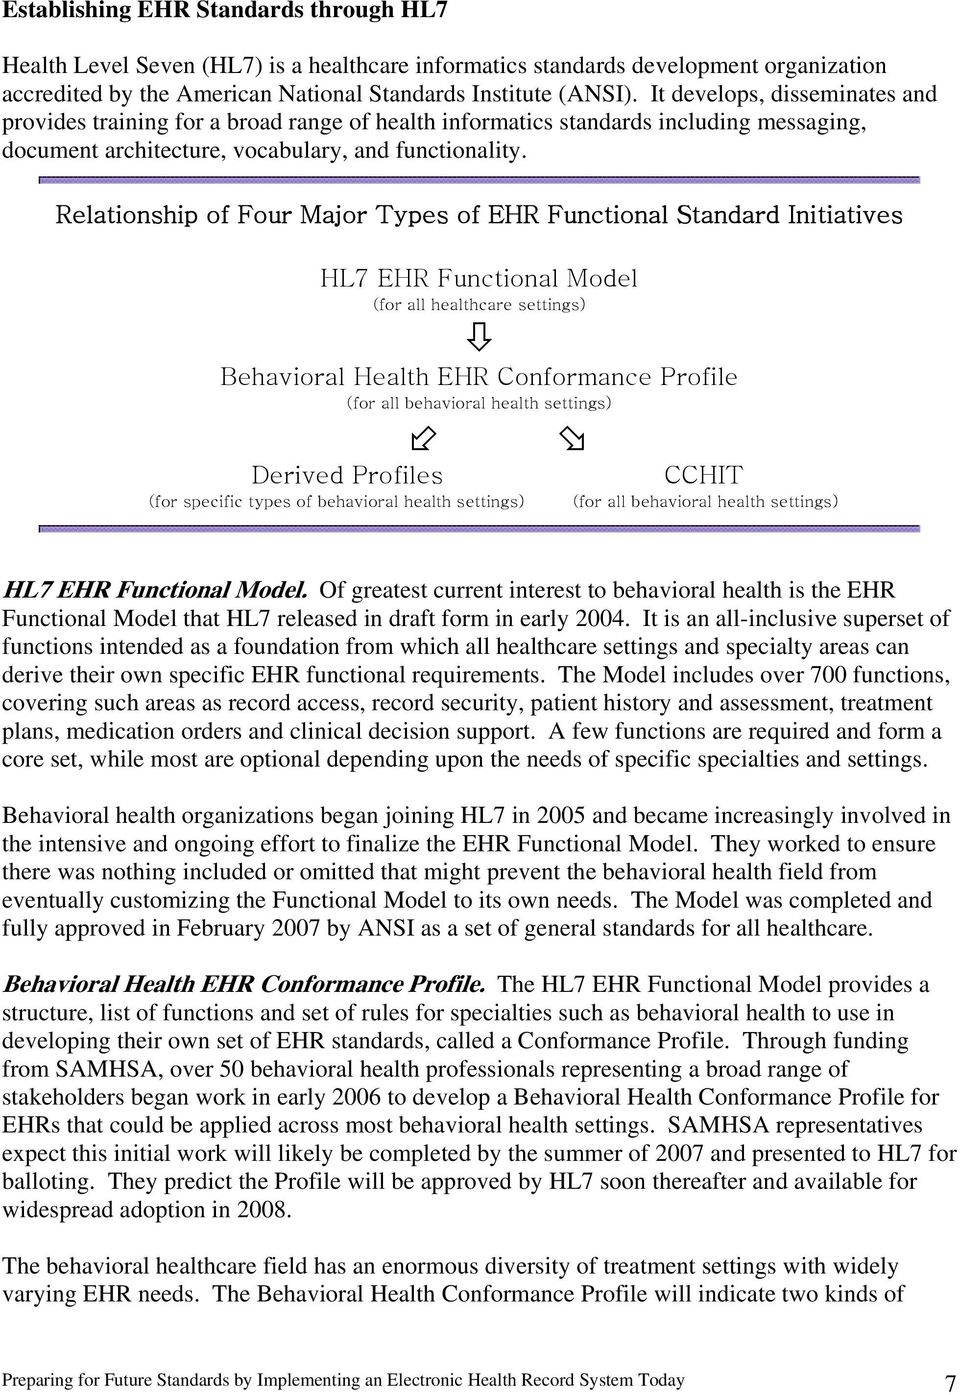 Relationship of Four Major Types of EHR Functional Standard Initiatives HL7 EHR Functional Model (for all healthcare settings) Behavioral Health EHR Conformance Profile (for all behavioral health